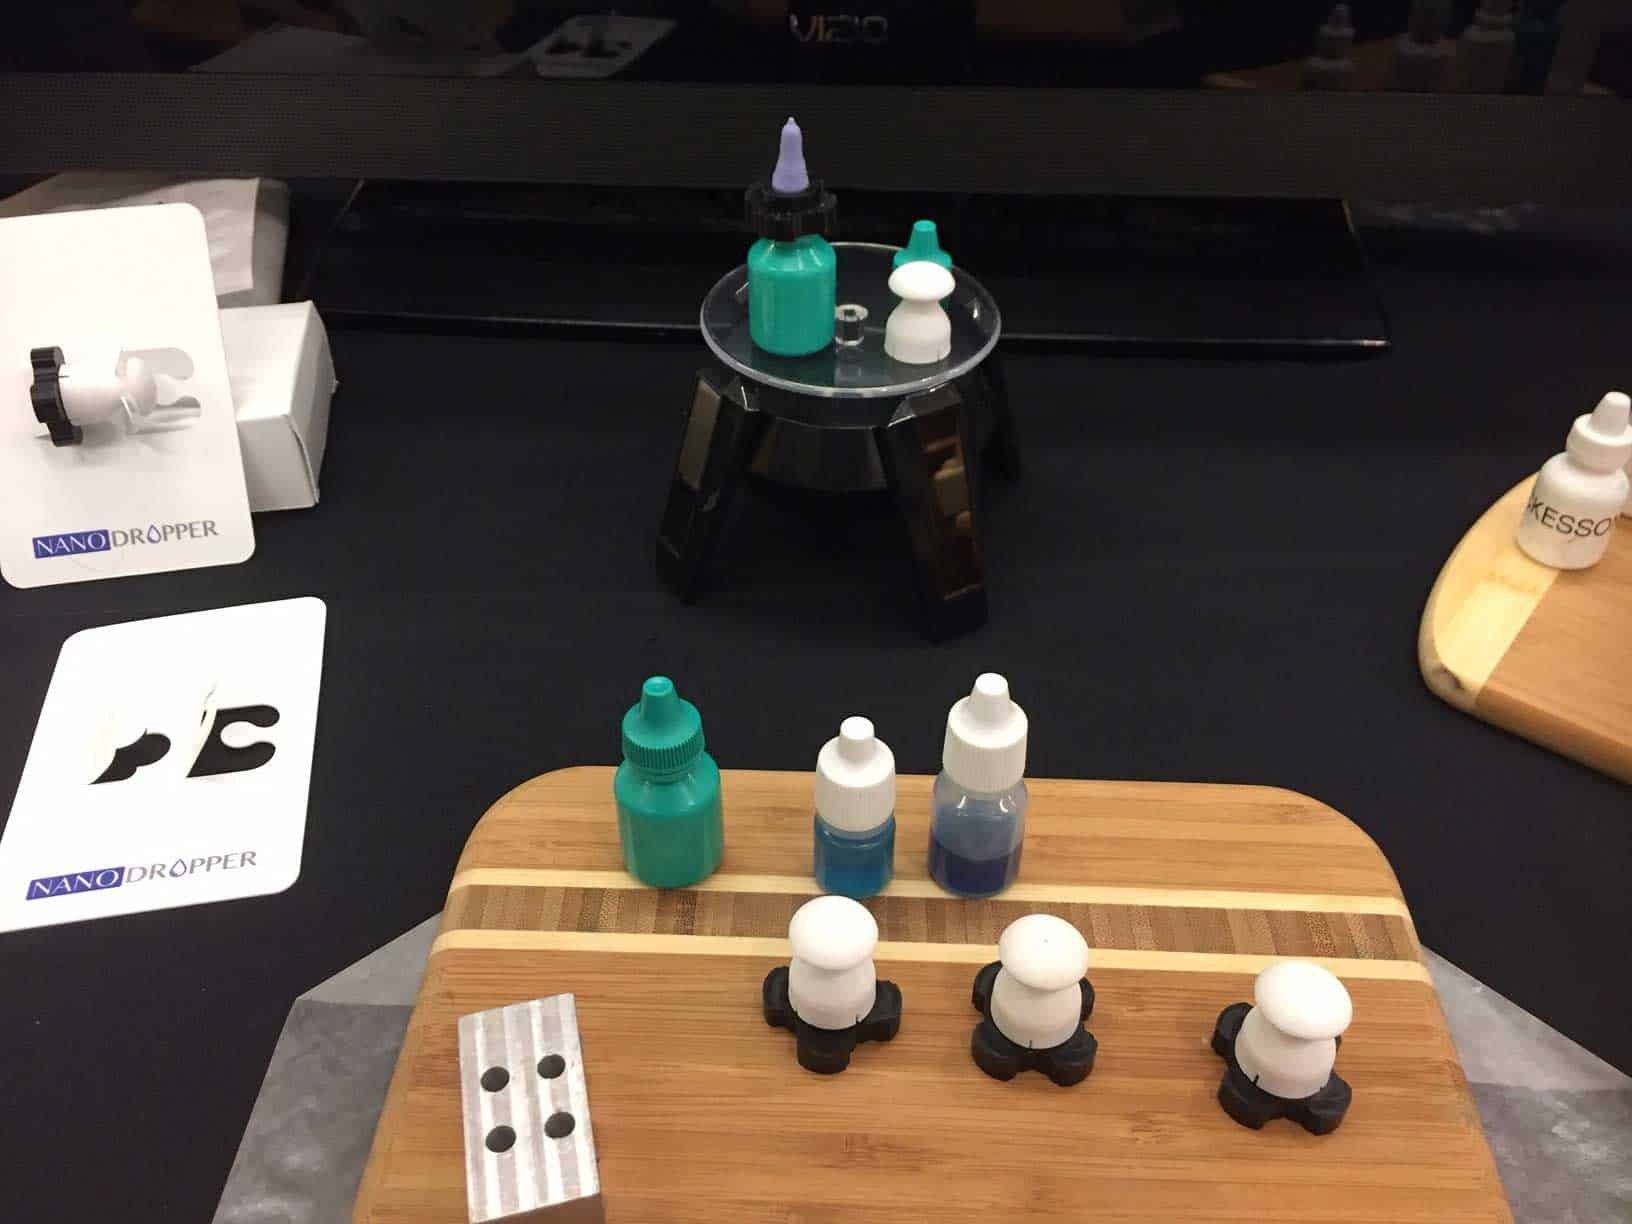 sample bottles and adapters from Nanodropper